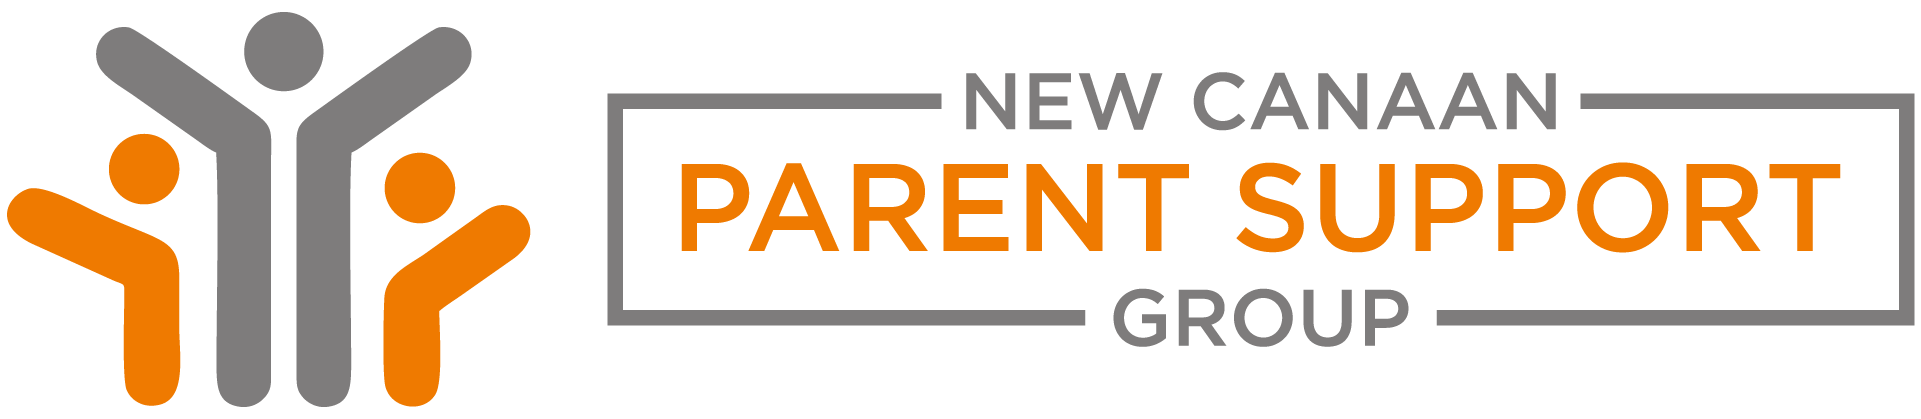 New Canaan Parent Support Group